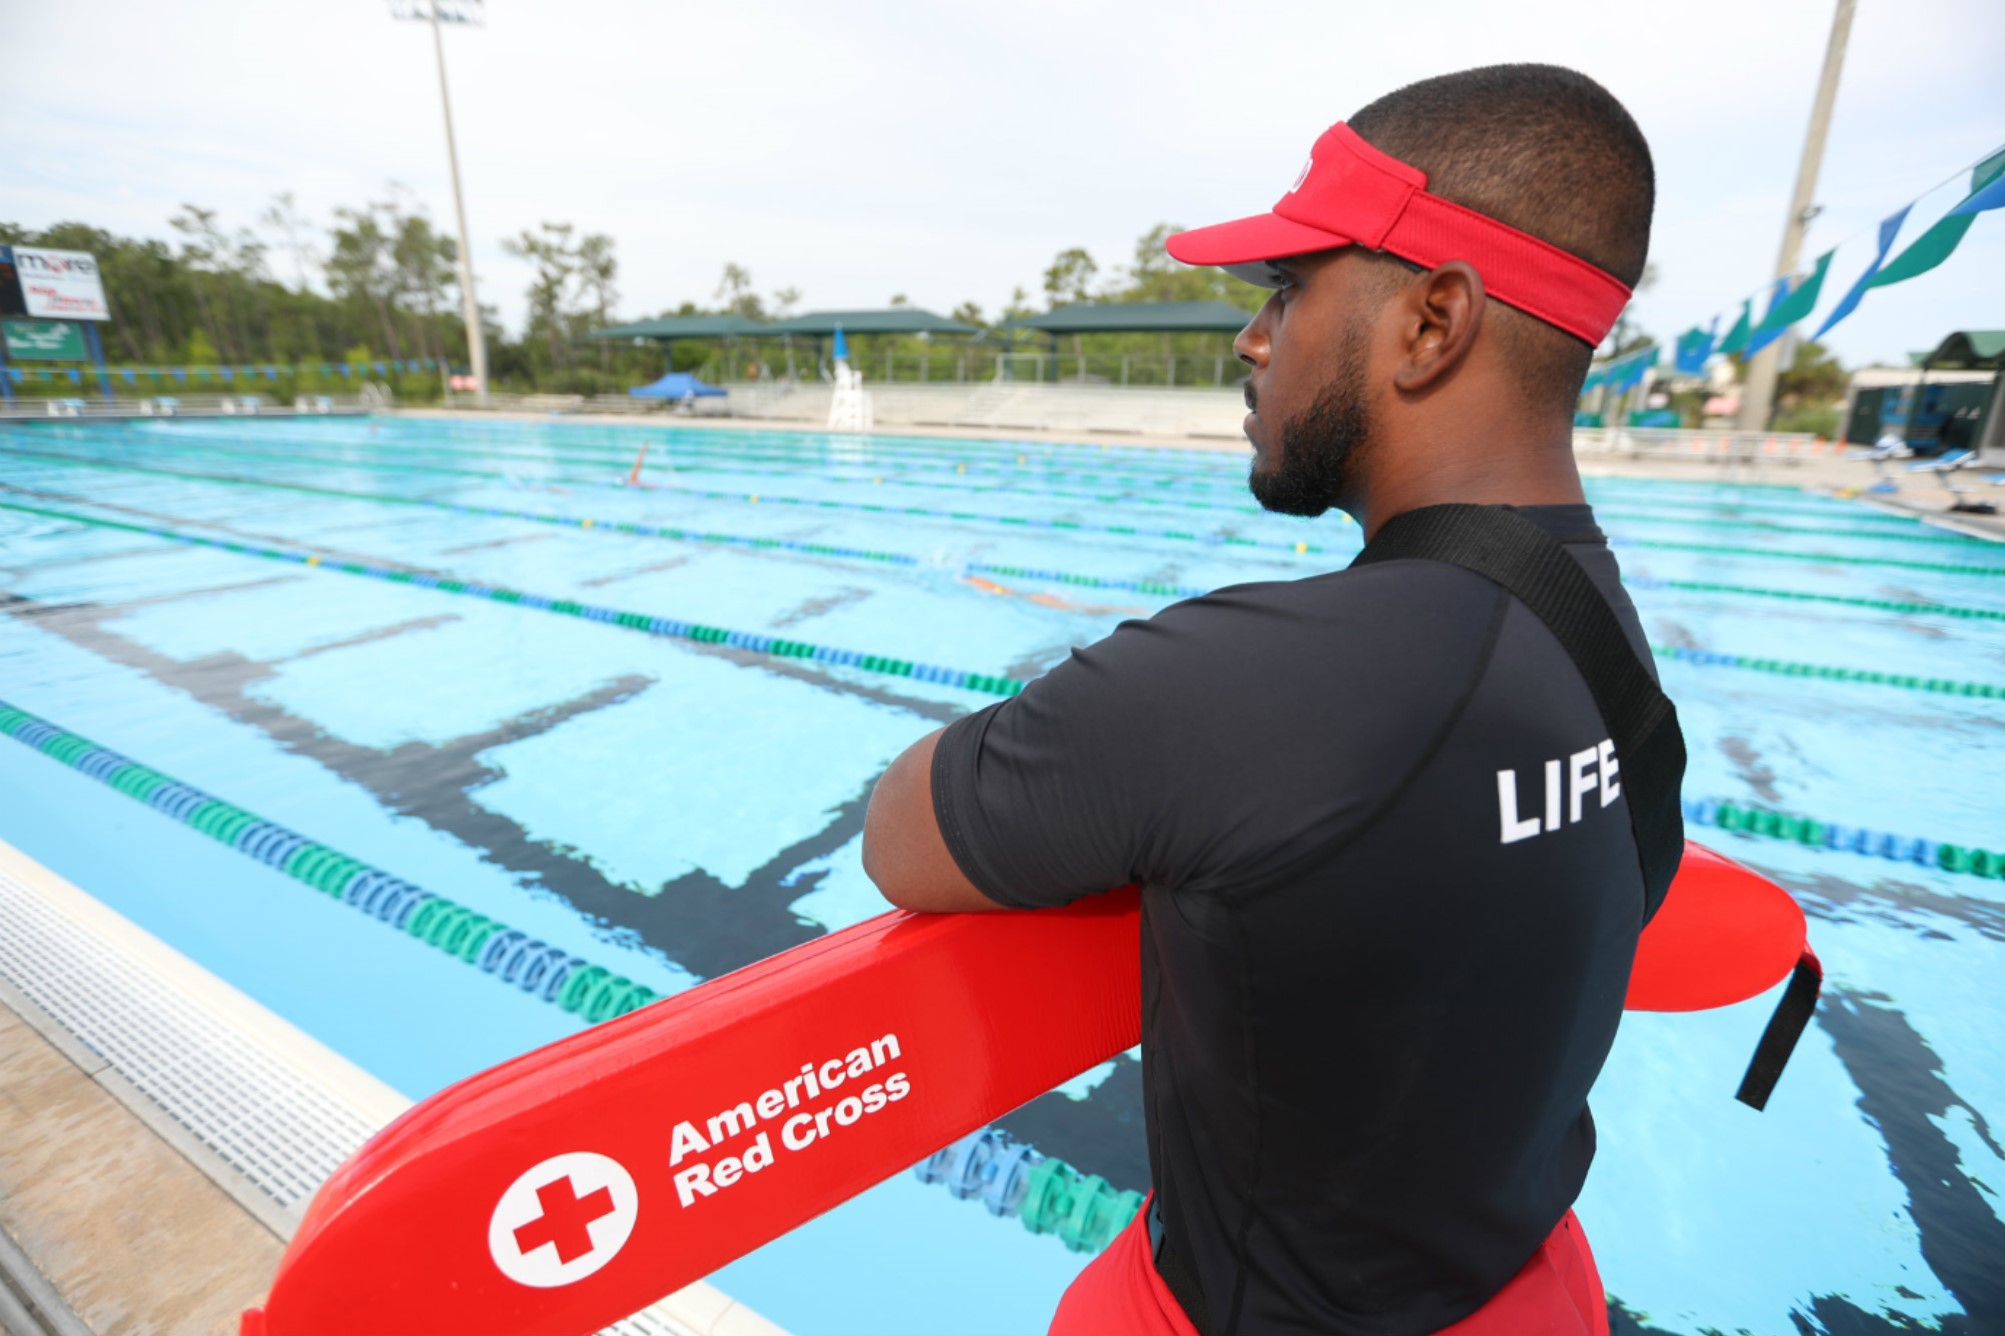 Discovery LifeGUARD